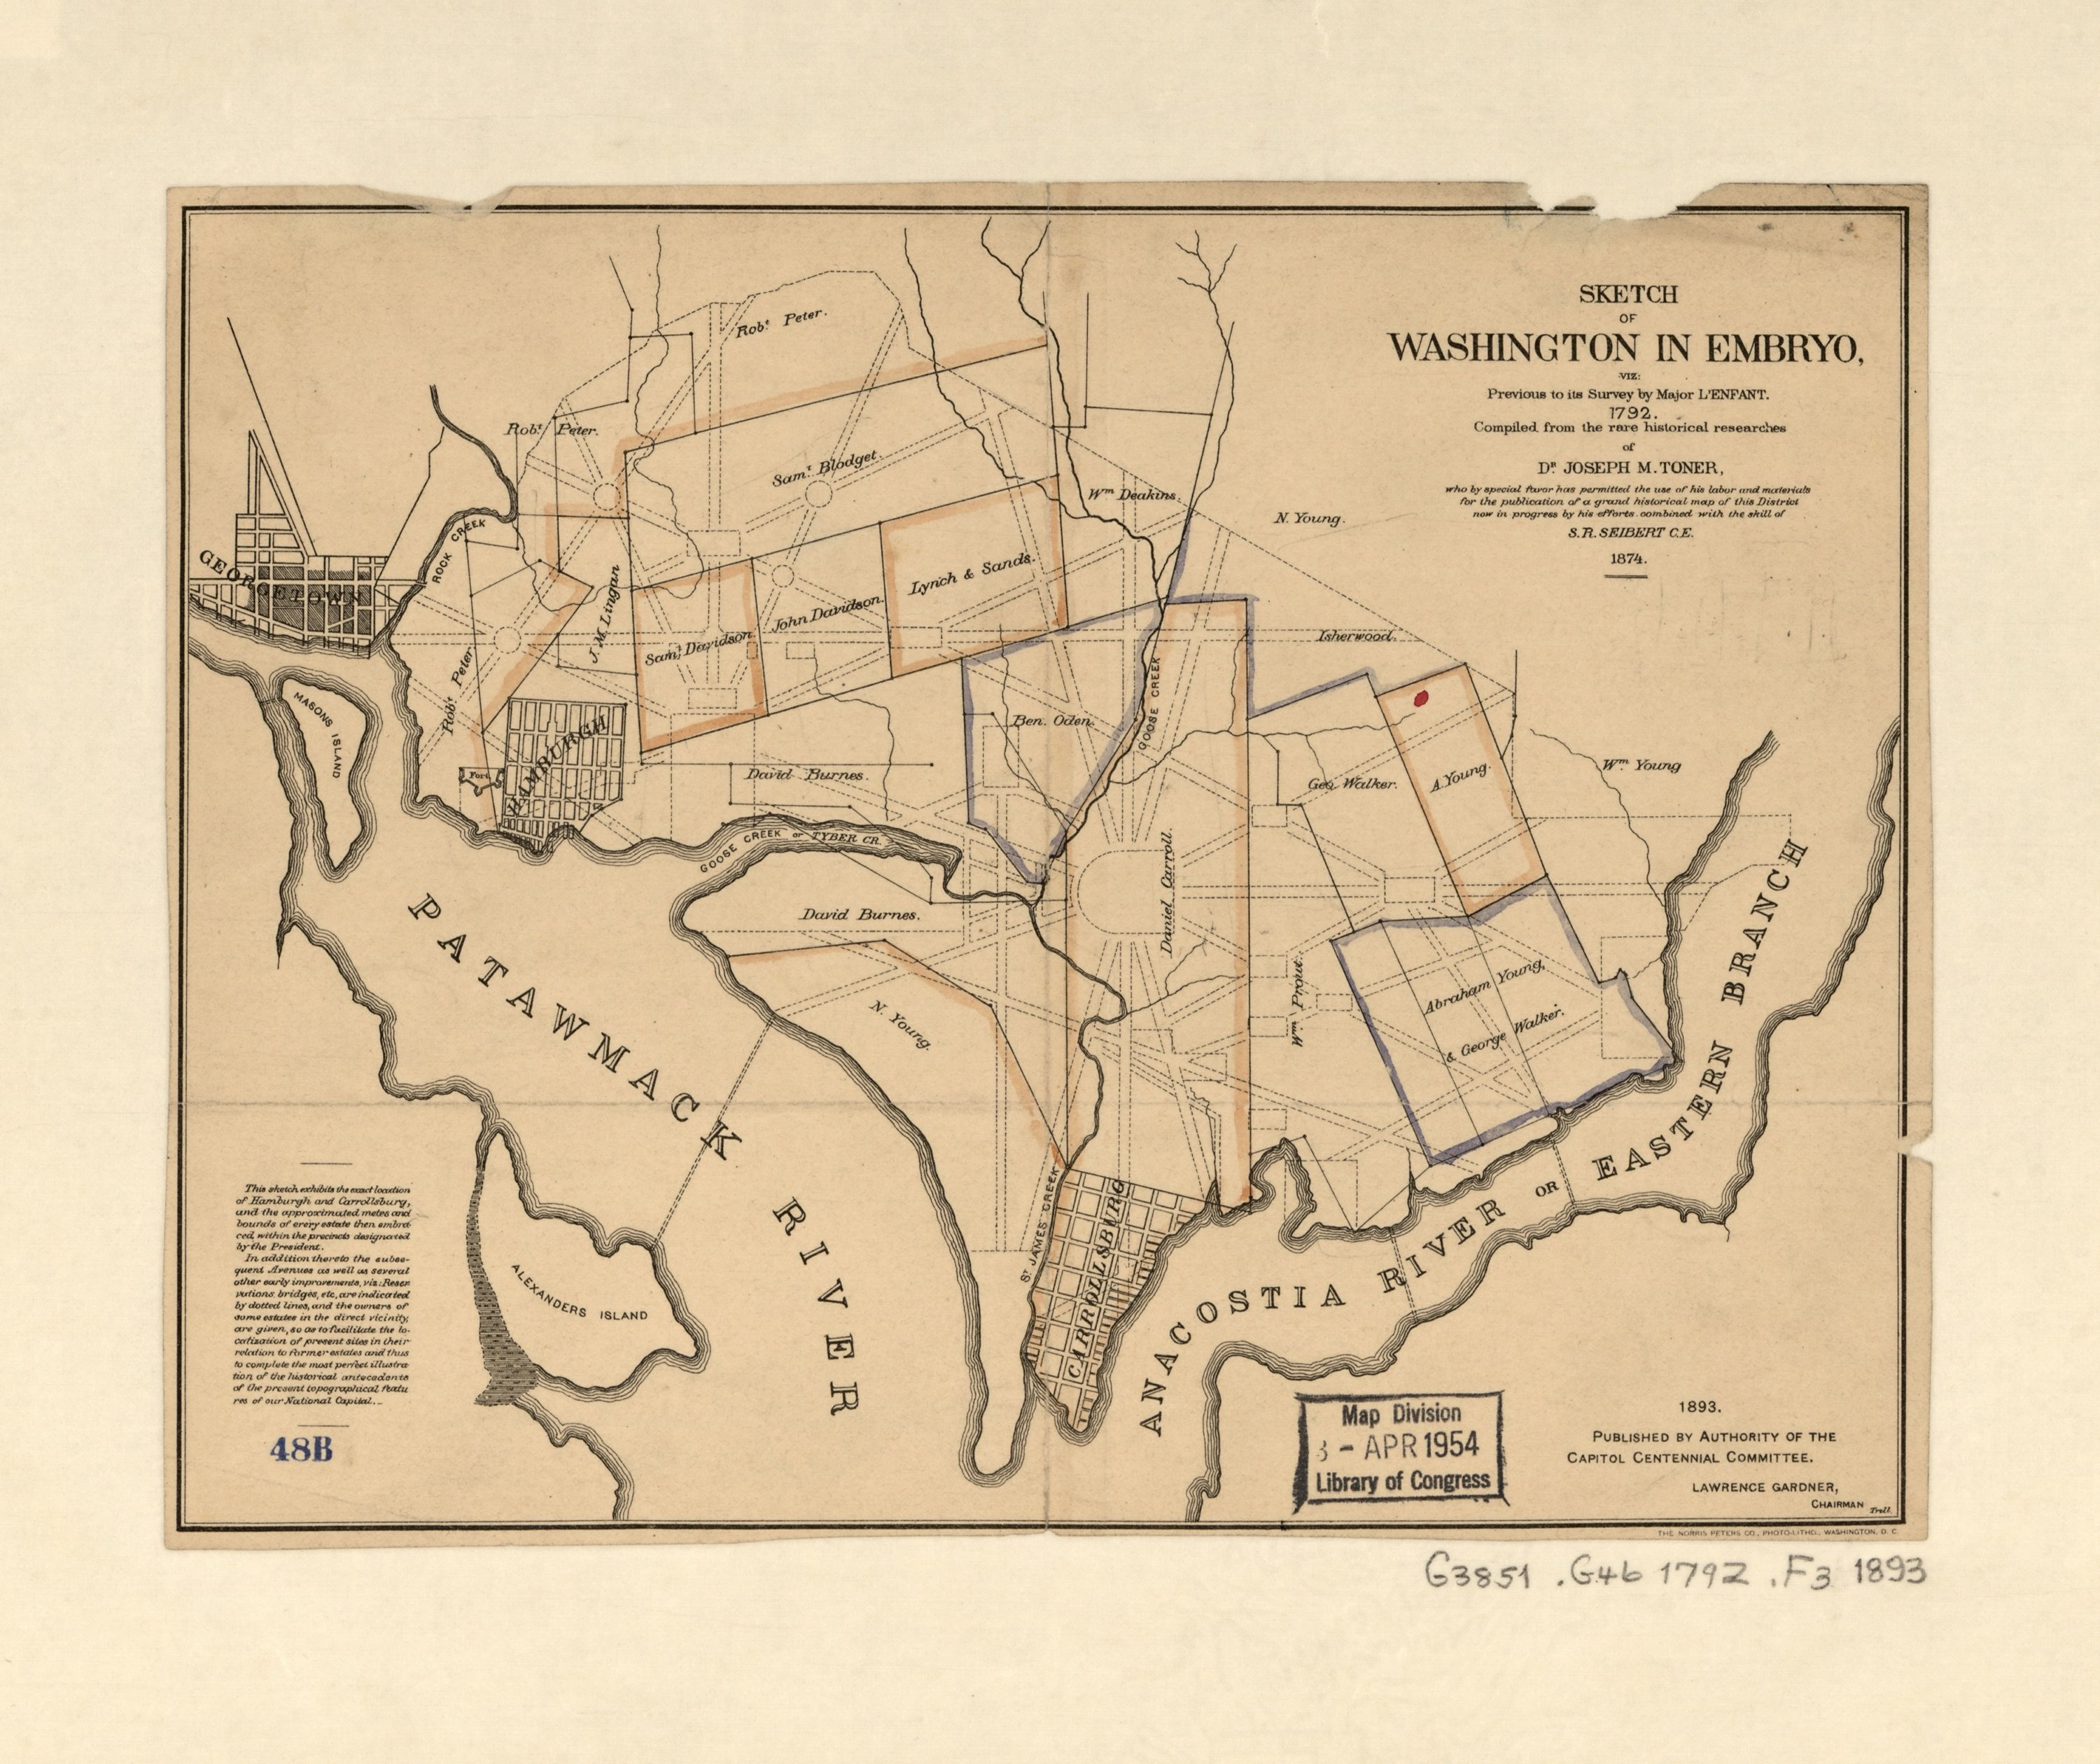 Map courtesy of Library of Congress.